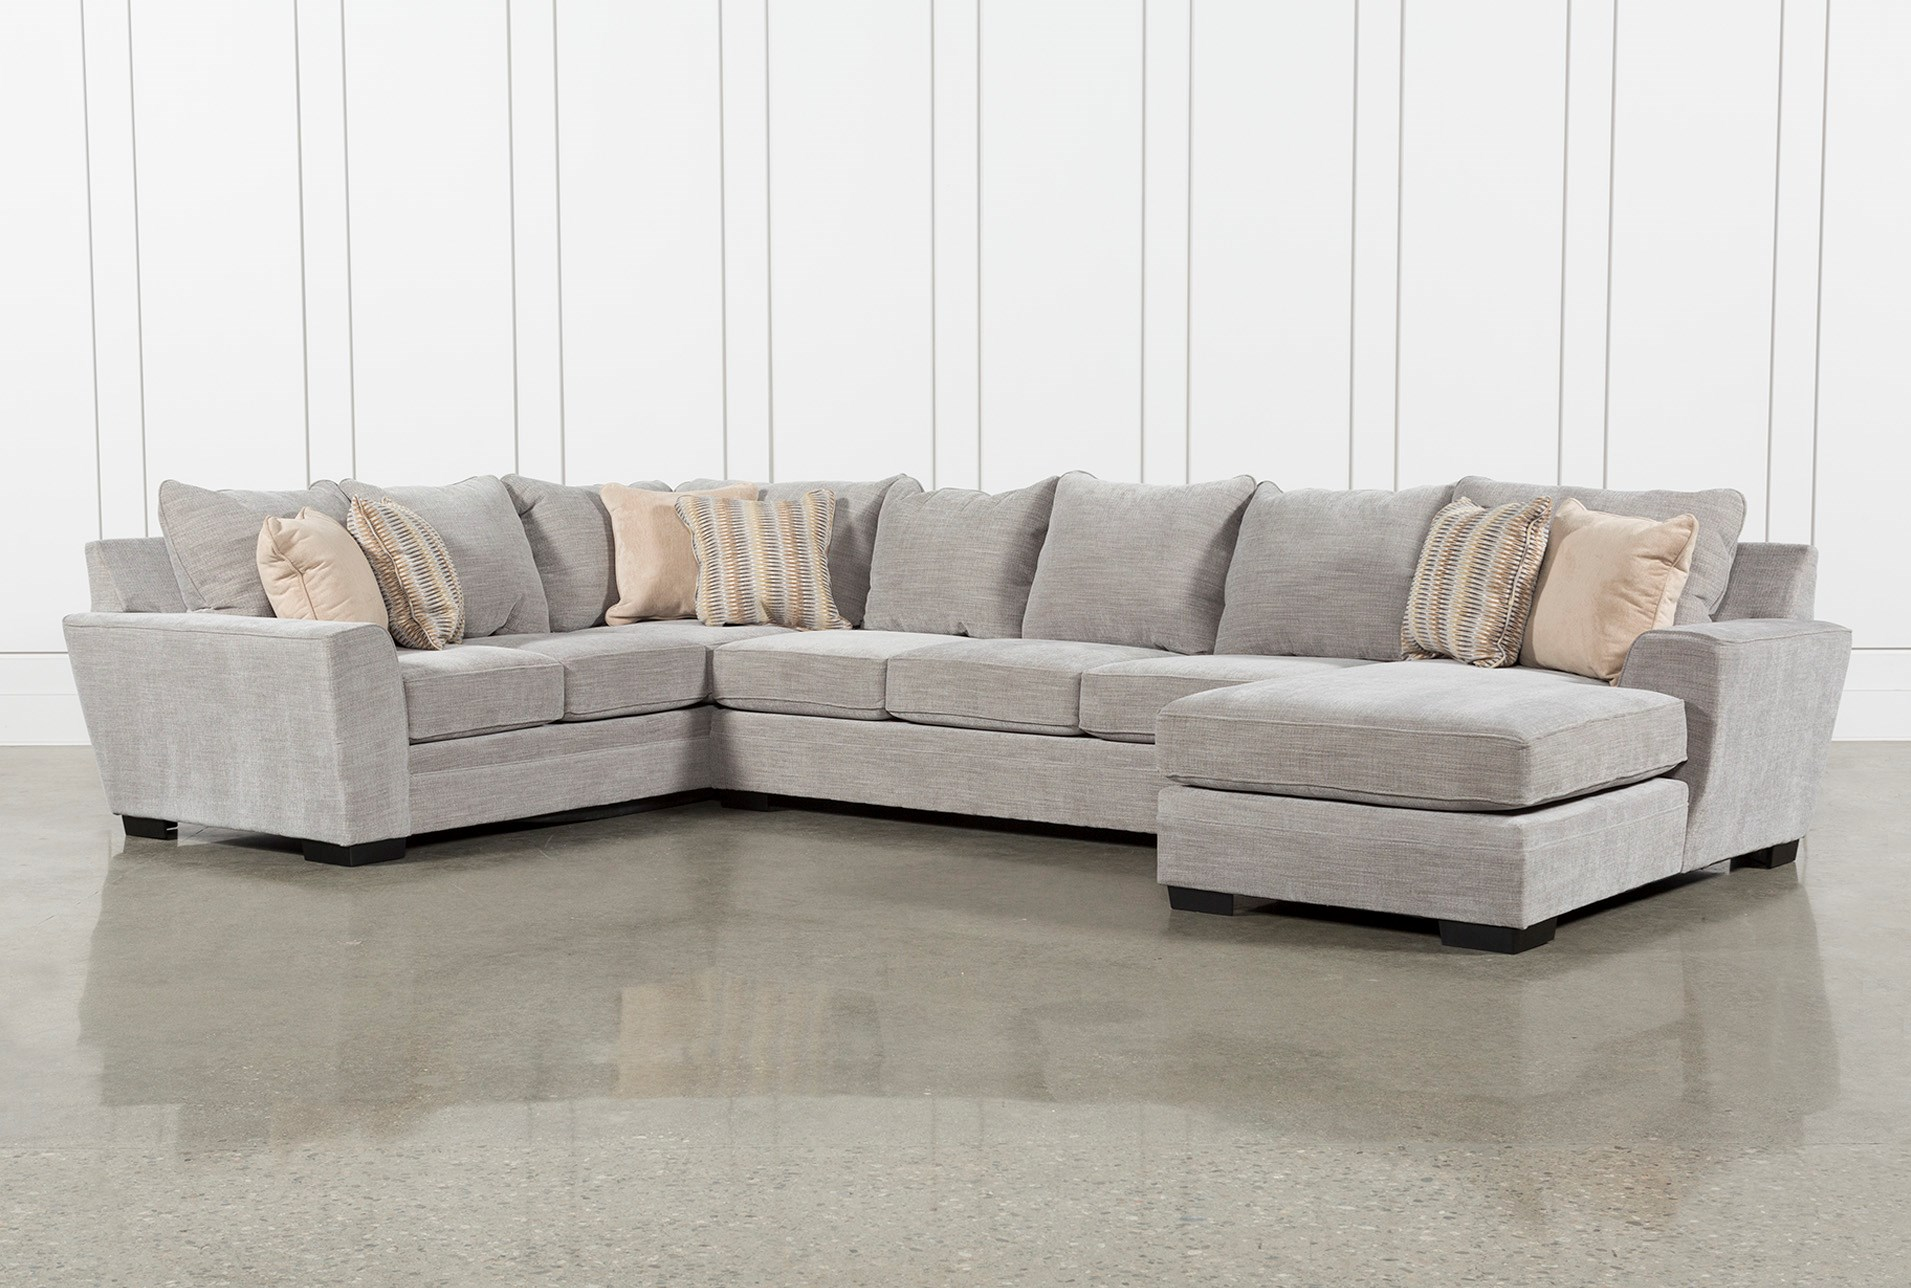 fabric sectional sofas. Delano Smoke 3 Piece Sectional Fabric Sofas I